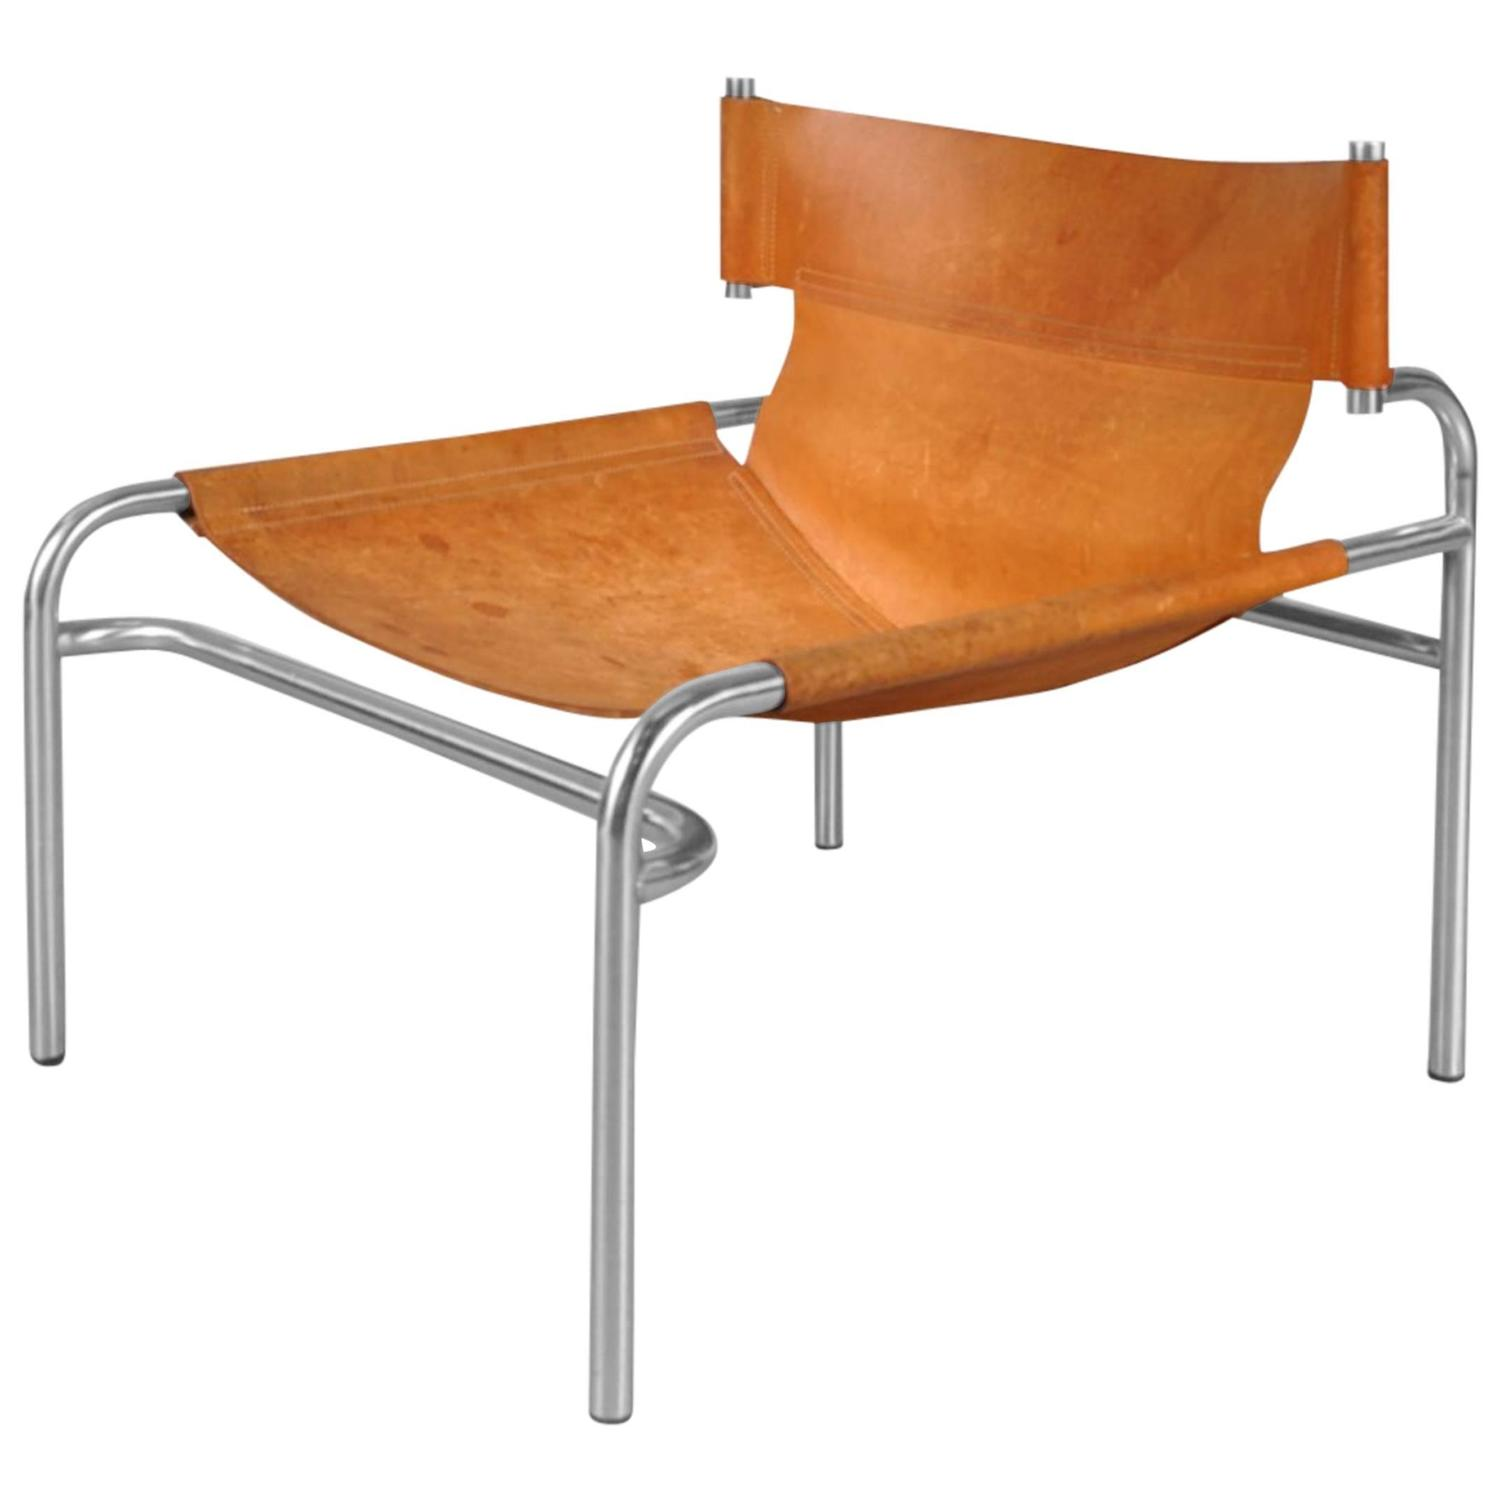 "Lounge Chair ""sz12"" by Walter Antonis for Spectrum Netherlands"